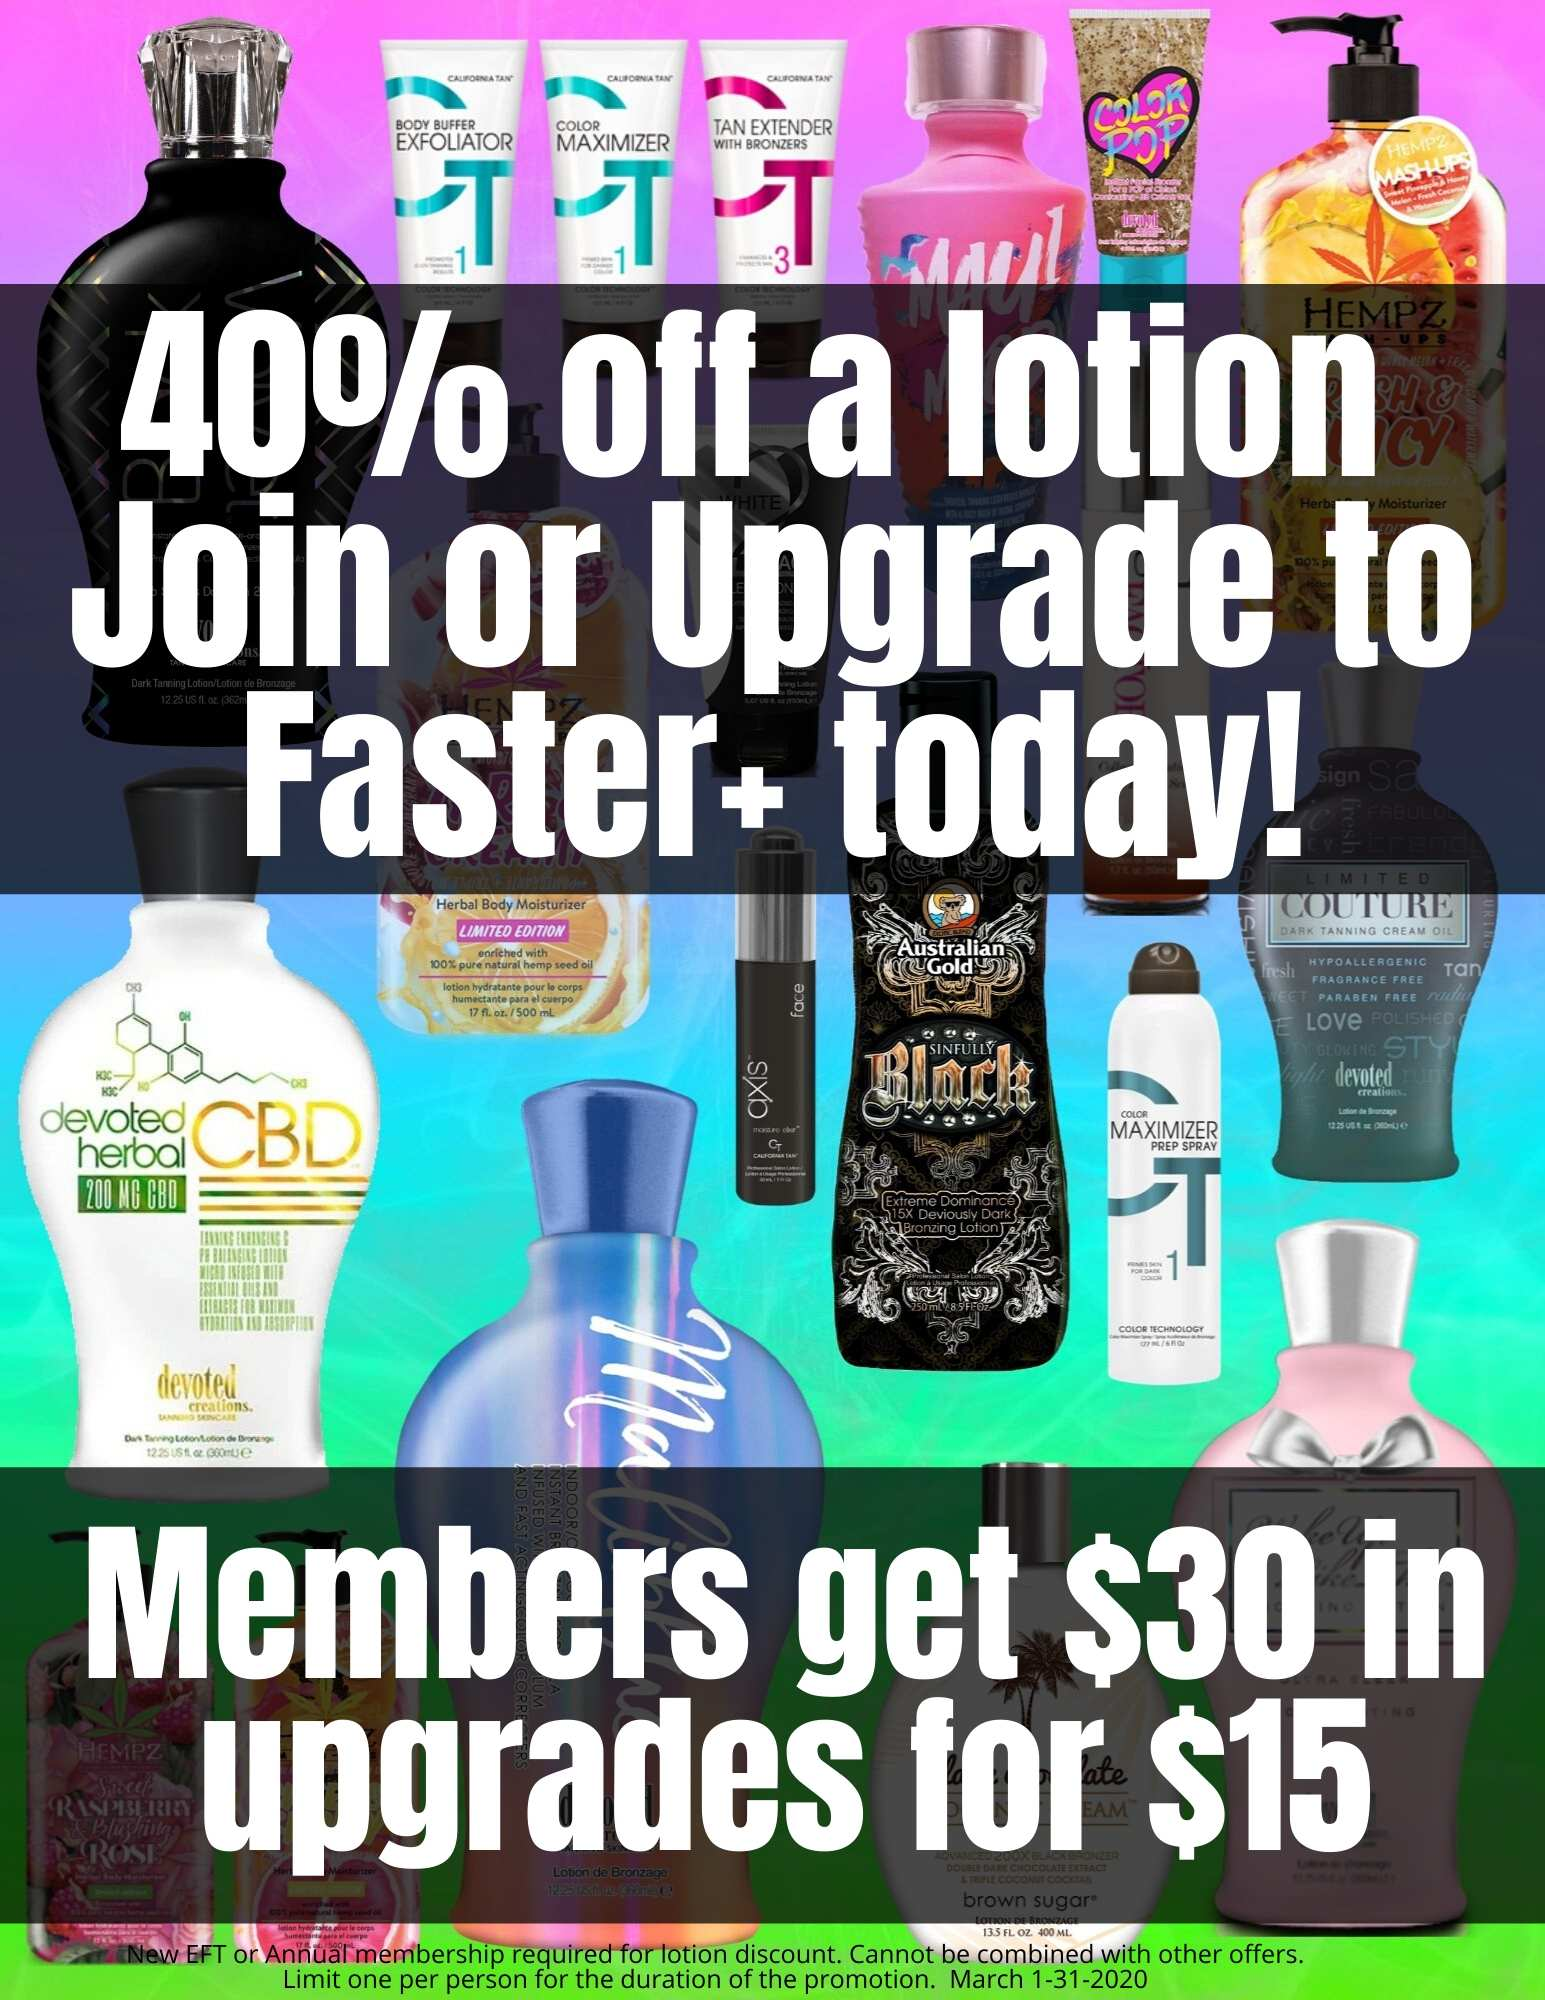 40% off any Lotion When You Join Faster+ Members get $30 in upgrades for $15